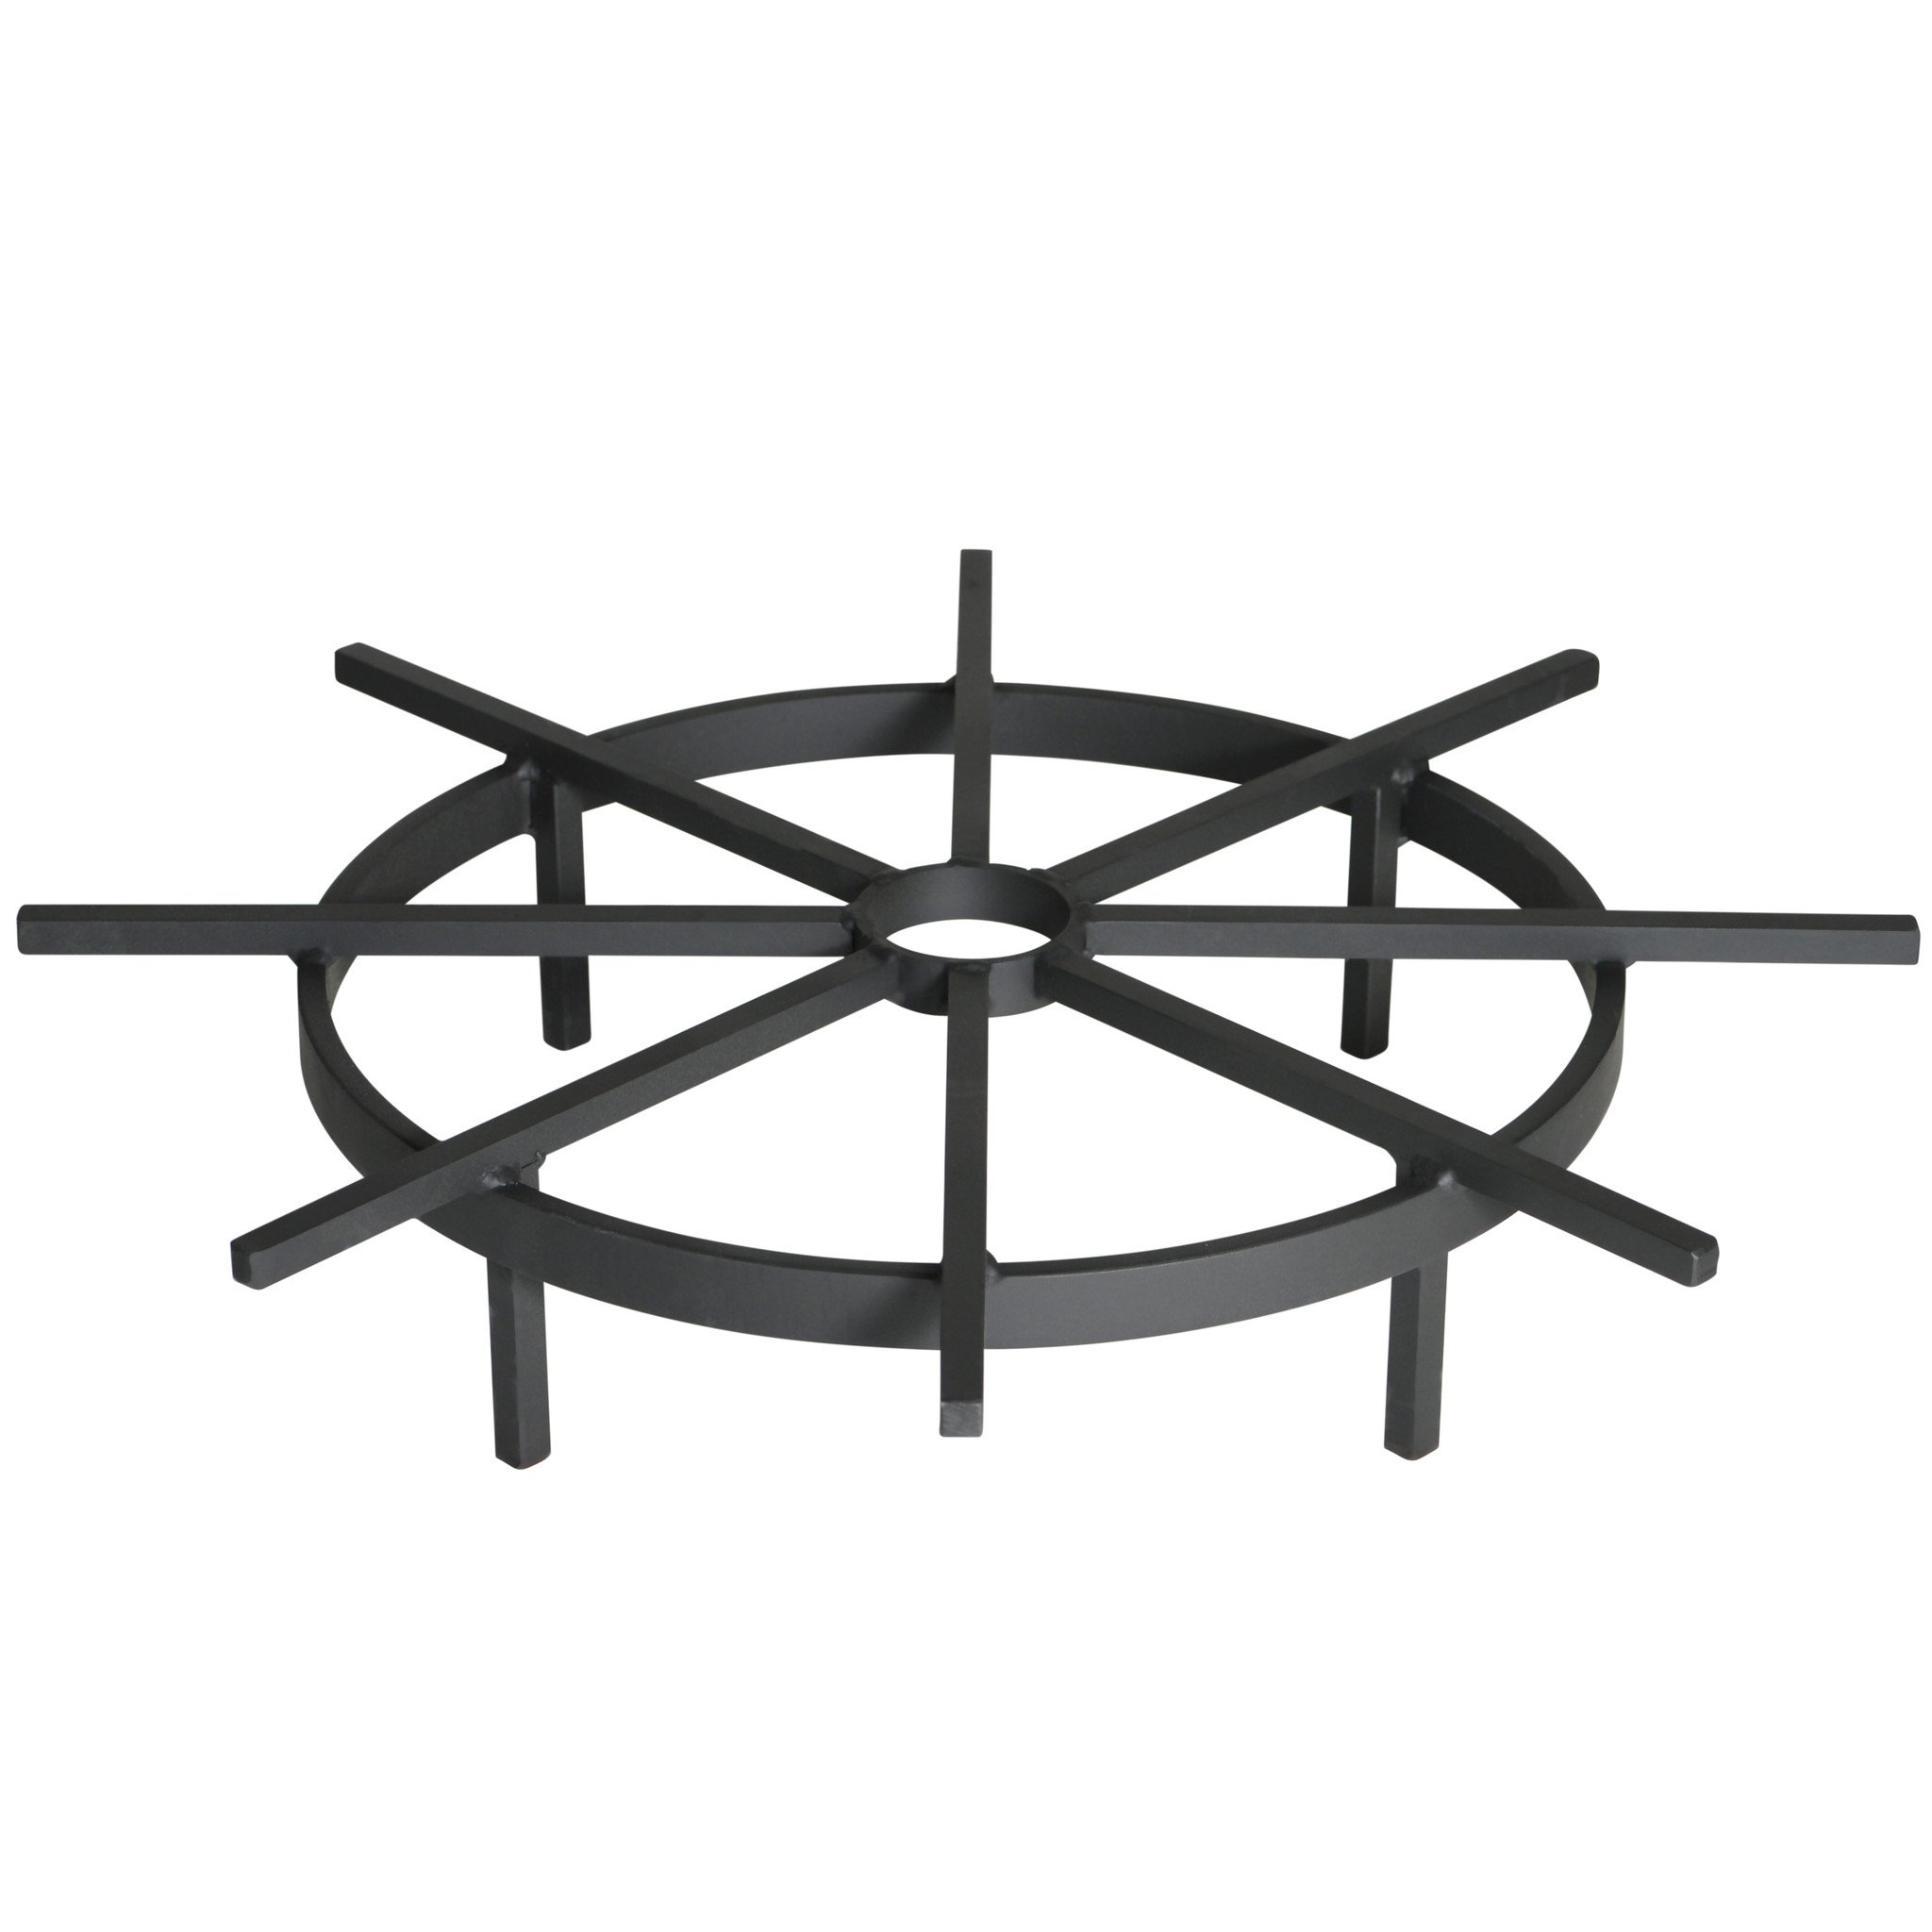 Heritage Products 20 Inch Ship's Wheel Fire Pit Grate - Made in the USA